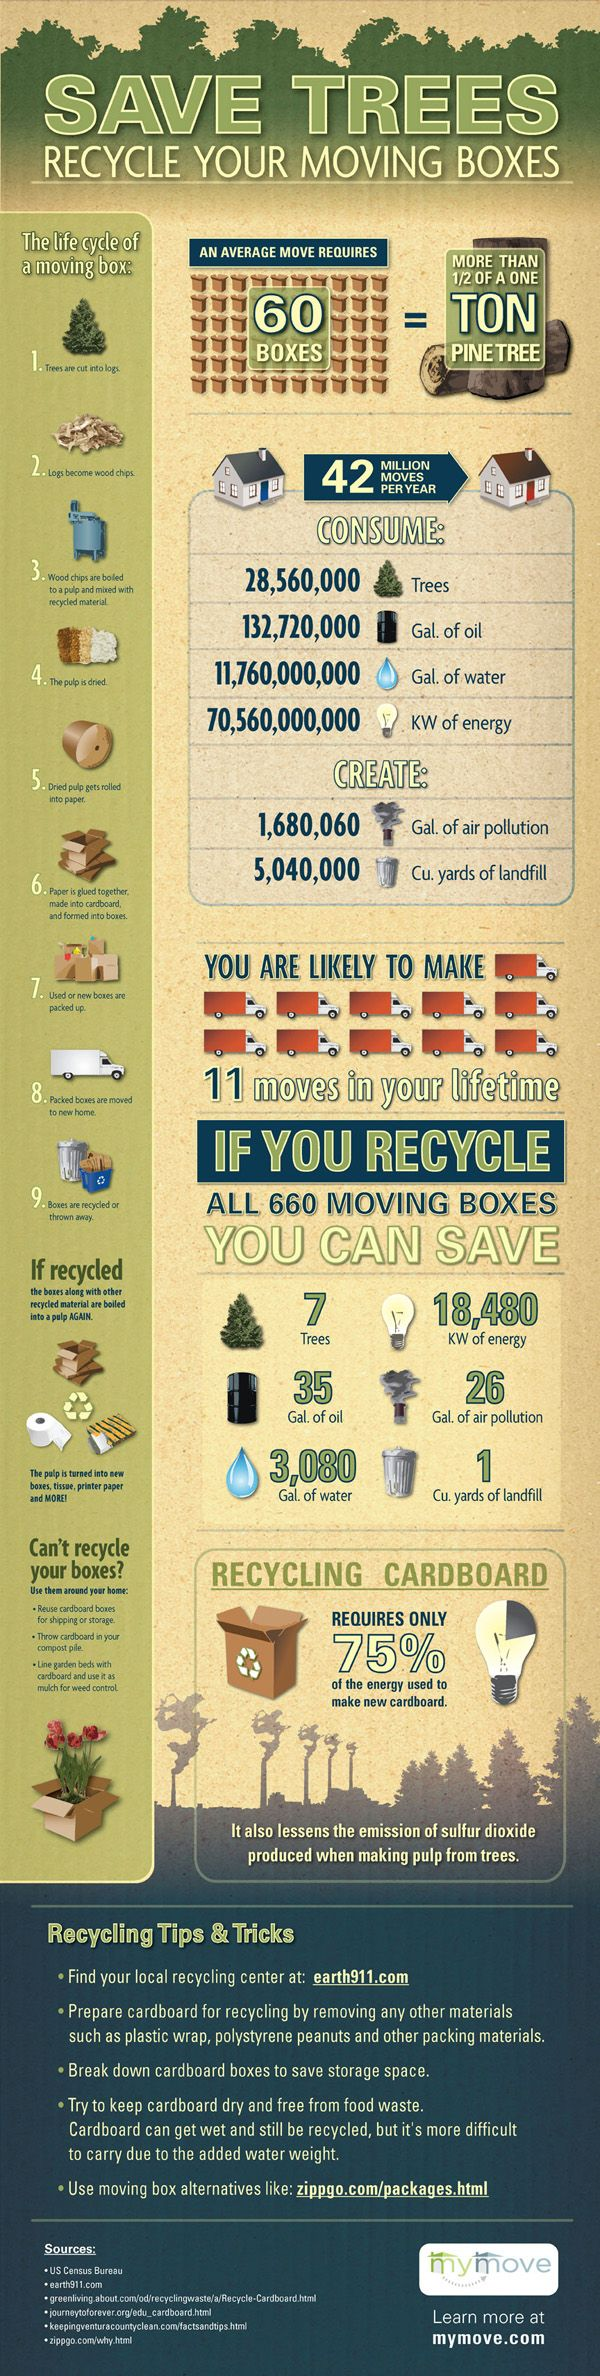 Save the Trees u0026 Recycle Moving Boxes